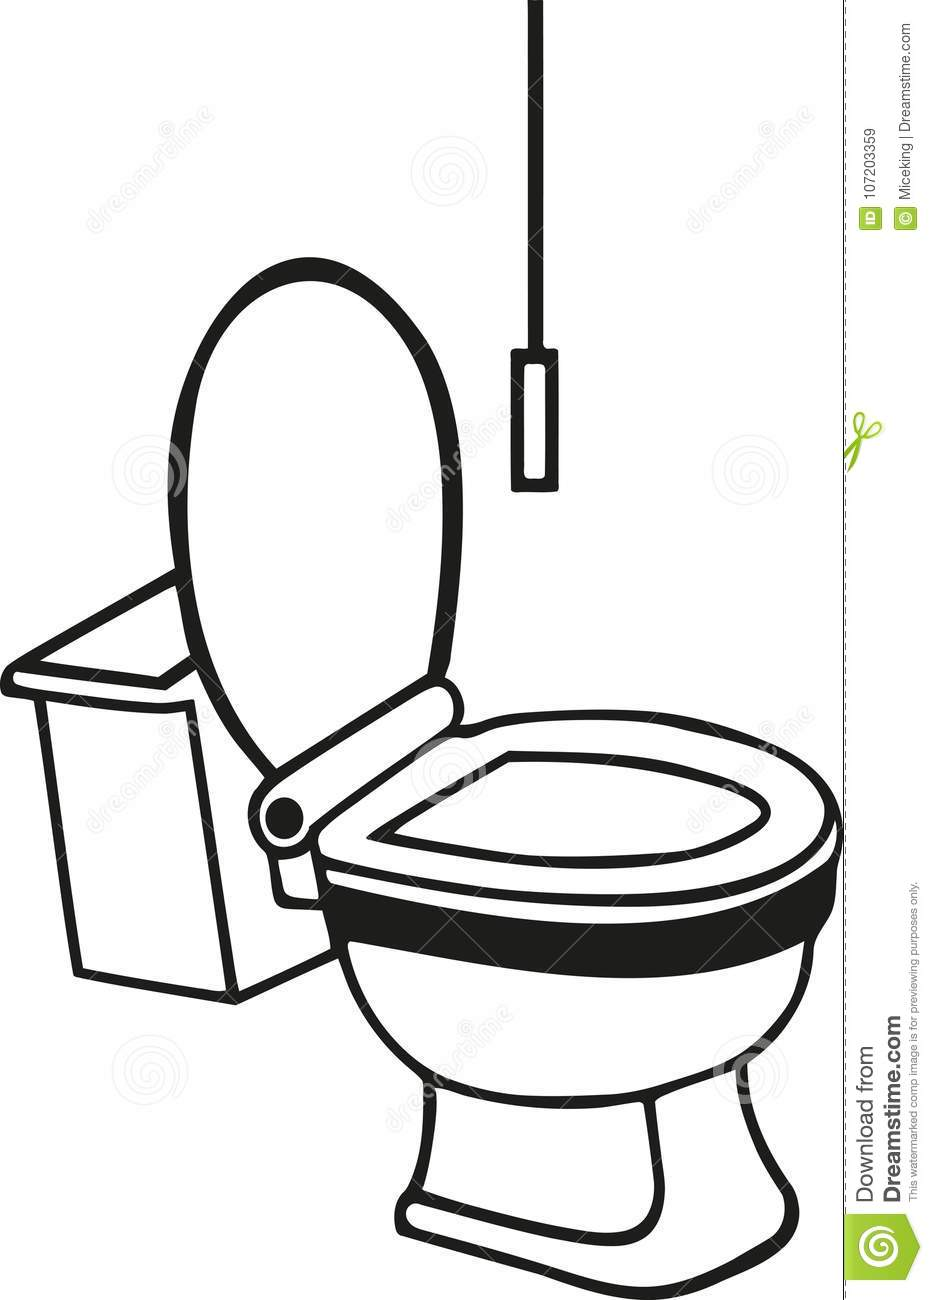 And have Clip art no peeing on toilet seat